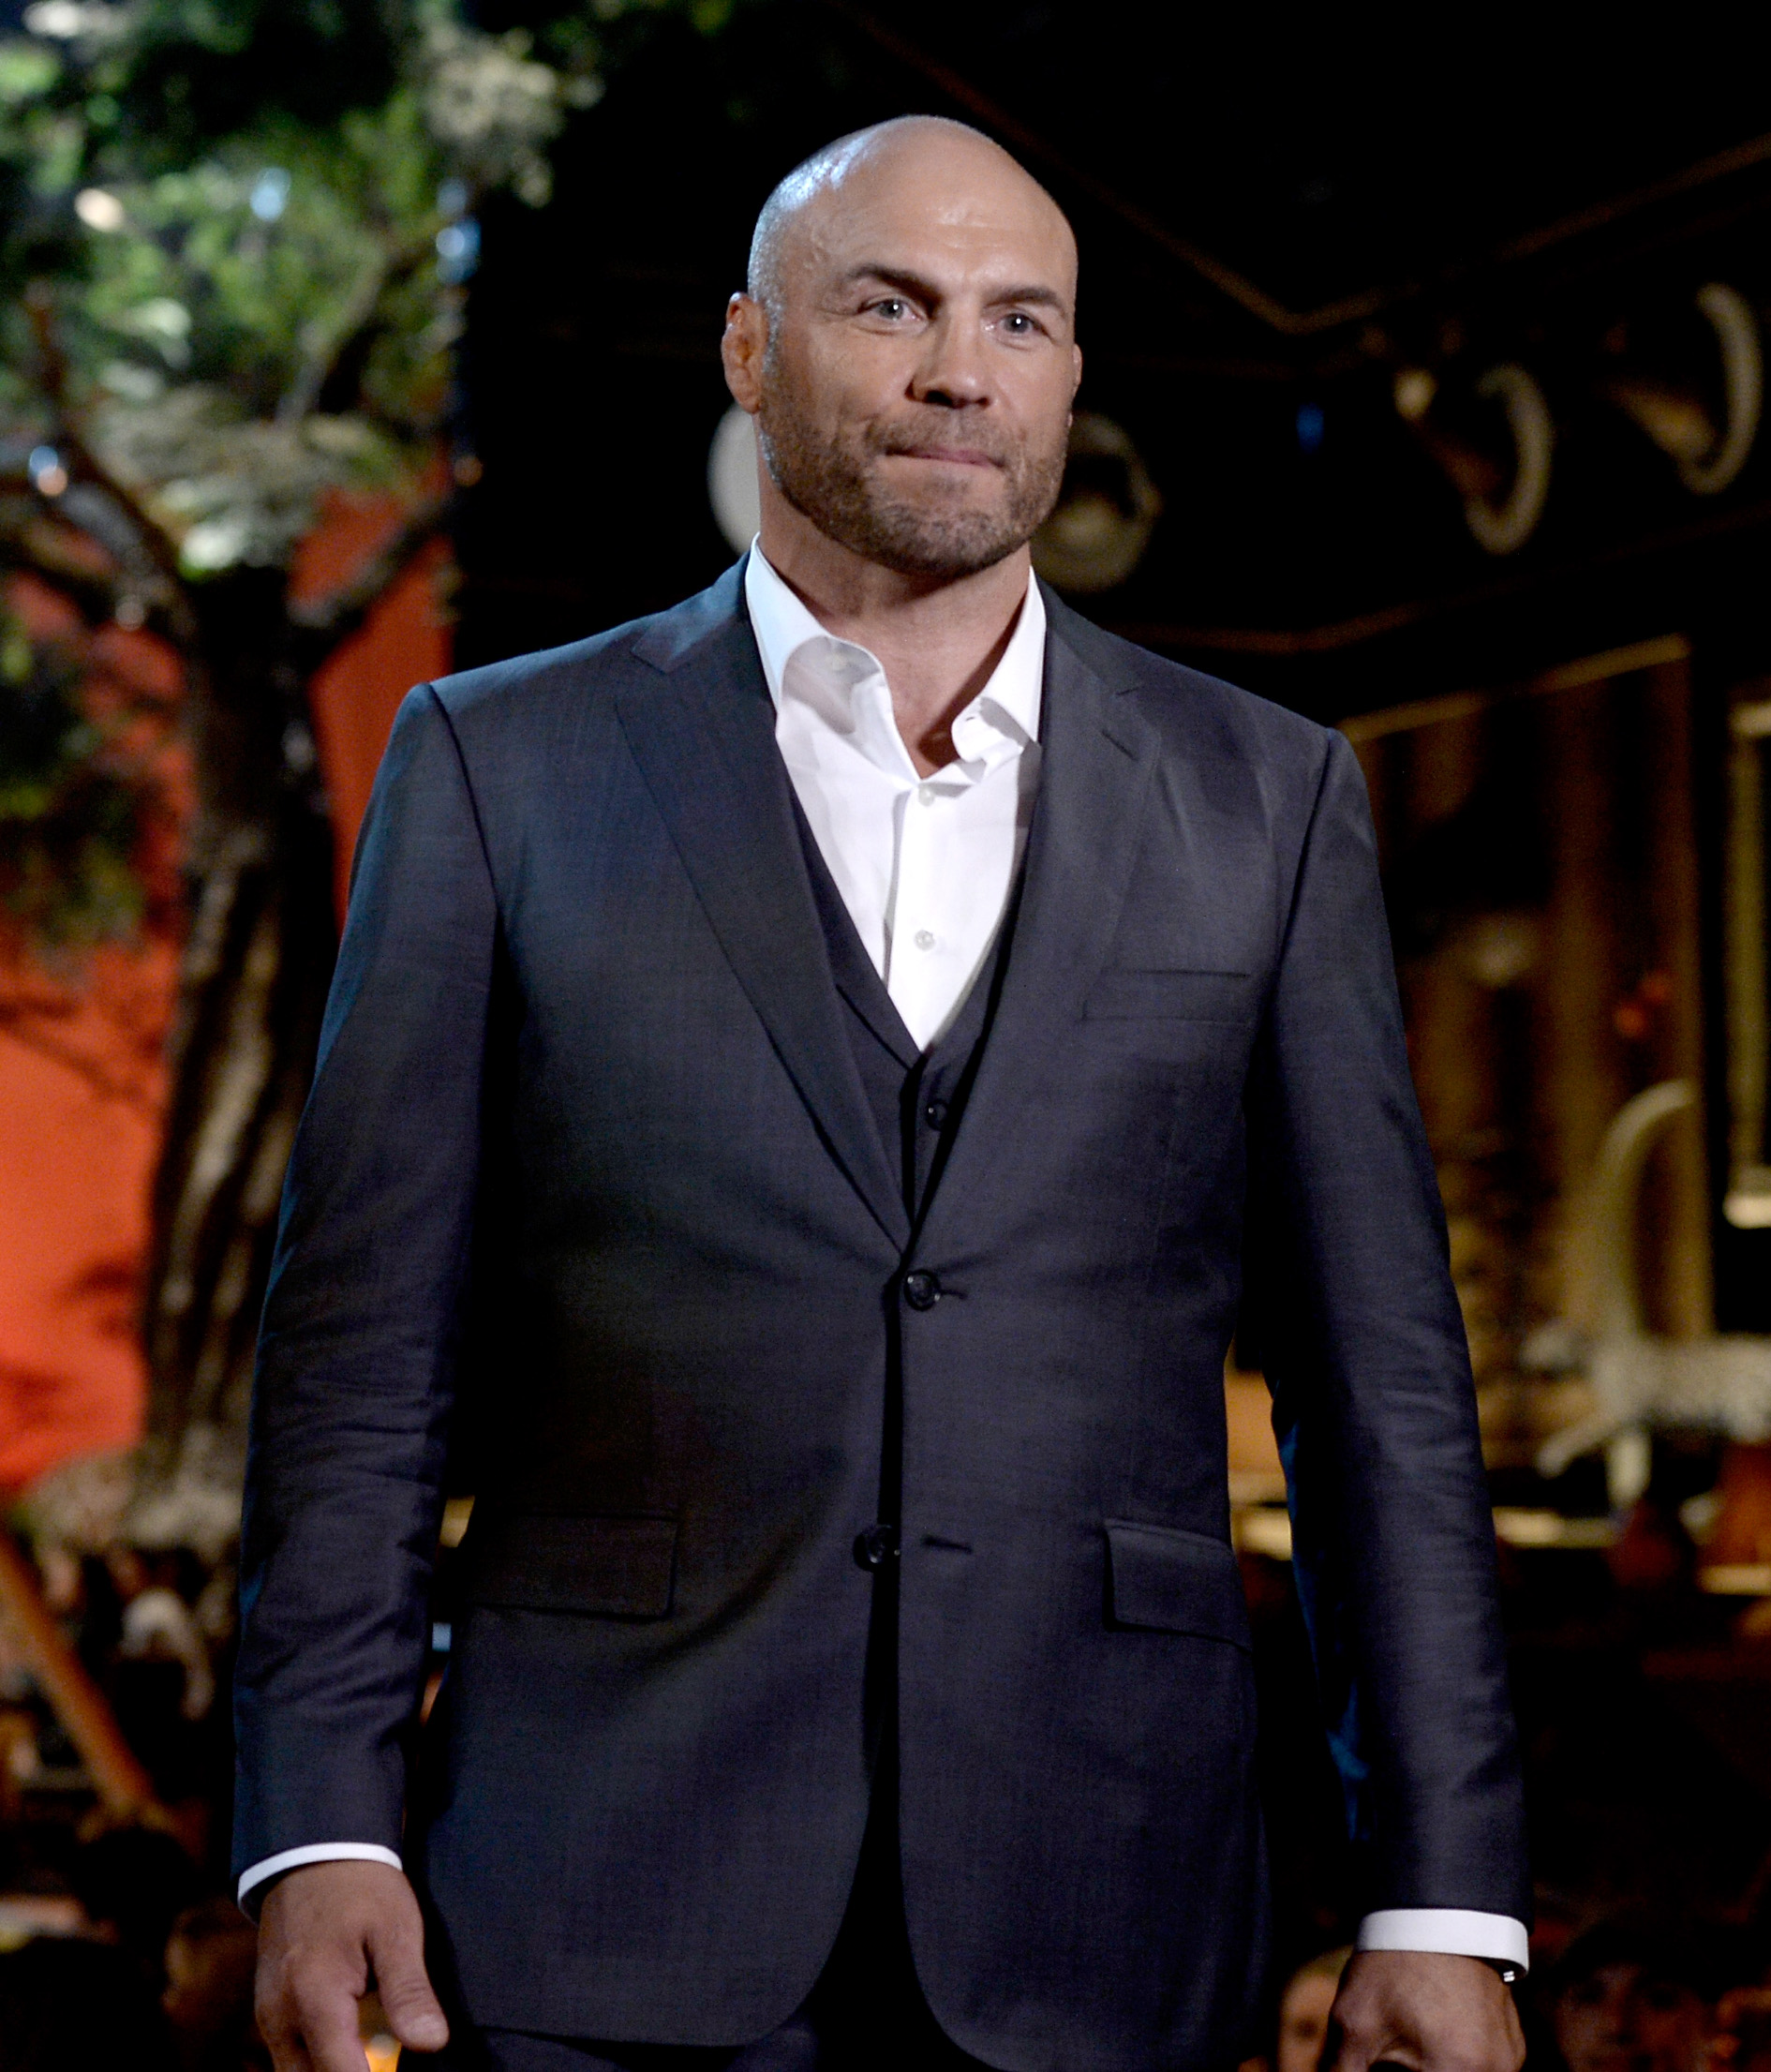 randy couture vs brock lesnarrandy couture vs, randy couture vs james toney, randy couture ufc, randy couture net worth, randy couture ear, randy couture tim sylvia, randy couture vs brock lesnar, randy couture vs lyoto machida, randy couture vs tim sylvia, randy couture vs kevin randleman, randy couture film, randy couture on conor mcgregor, randy couture vs boxer, randy couture vs josh barnett, randy couture vs gabriel gonzaga, randy couture vs brandon vera, randy couture gym, randy couture vs chuck liddell 1, randy couture vs vitor belfort 2, randy couture height